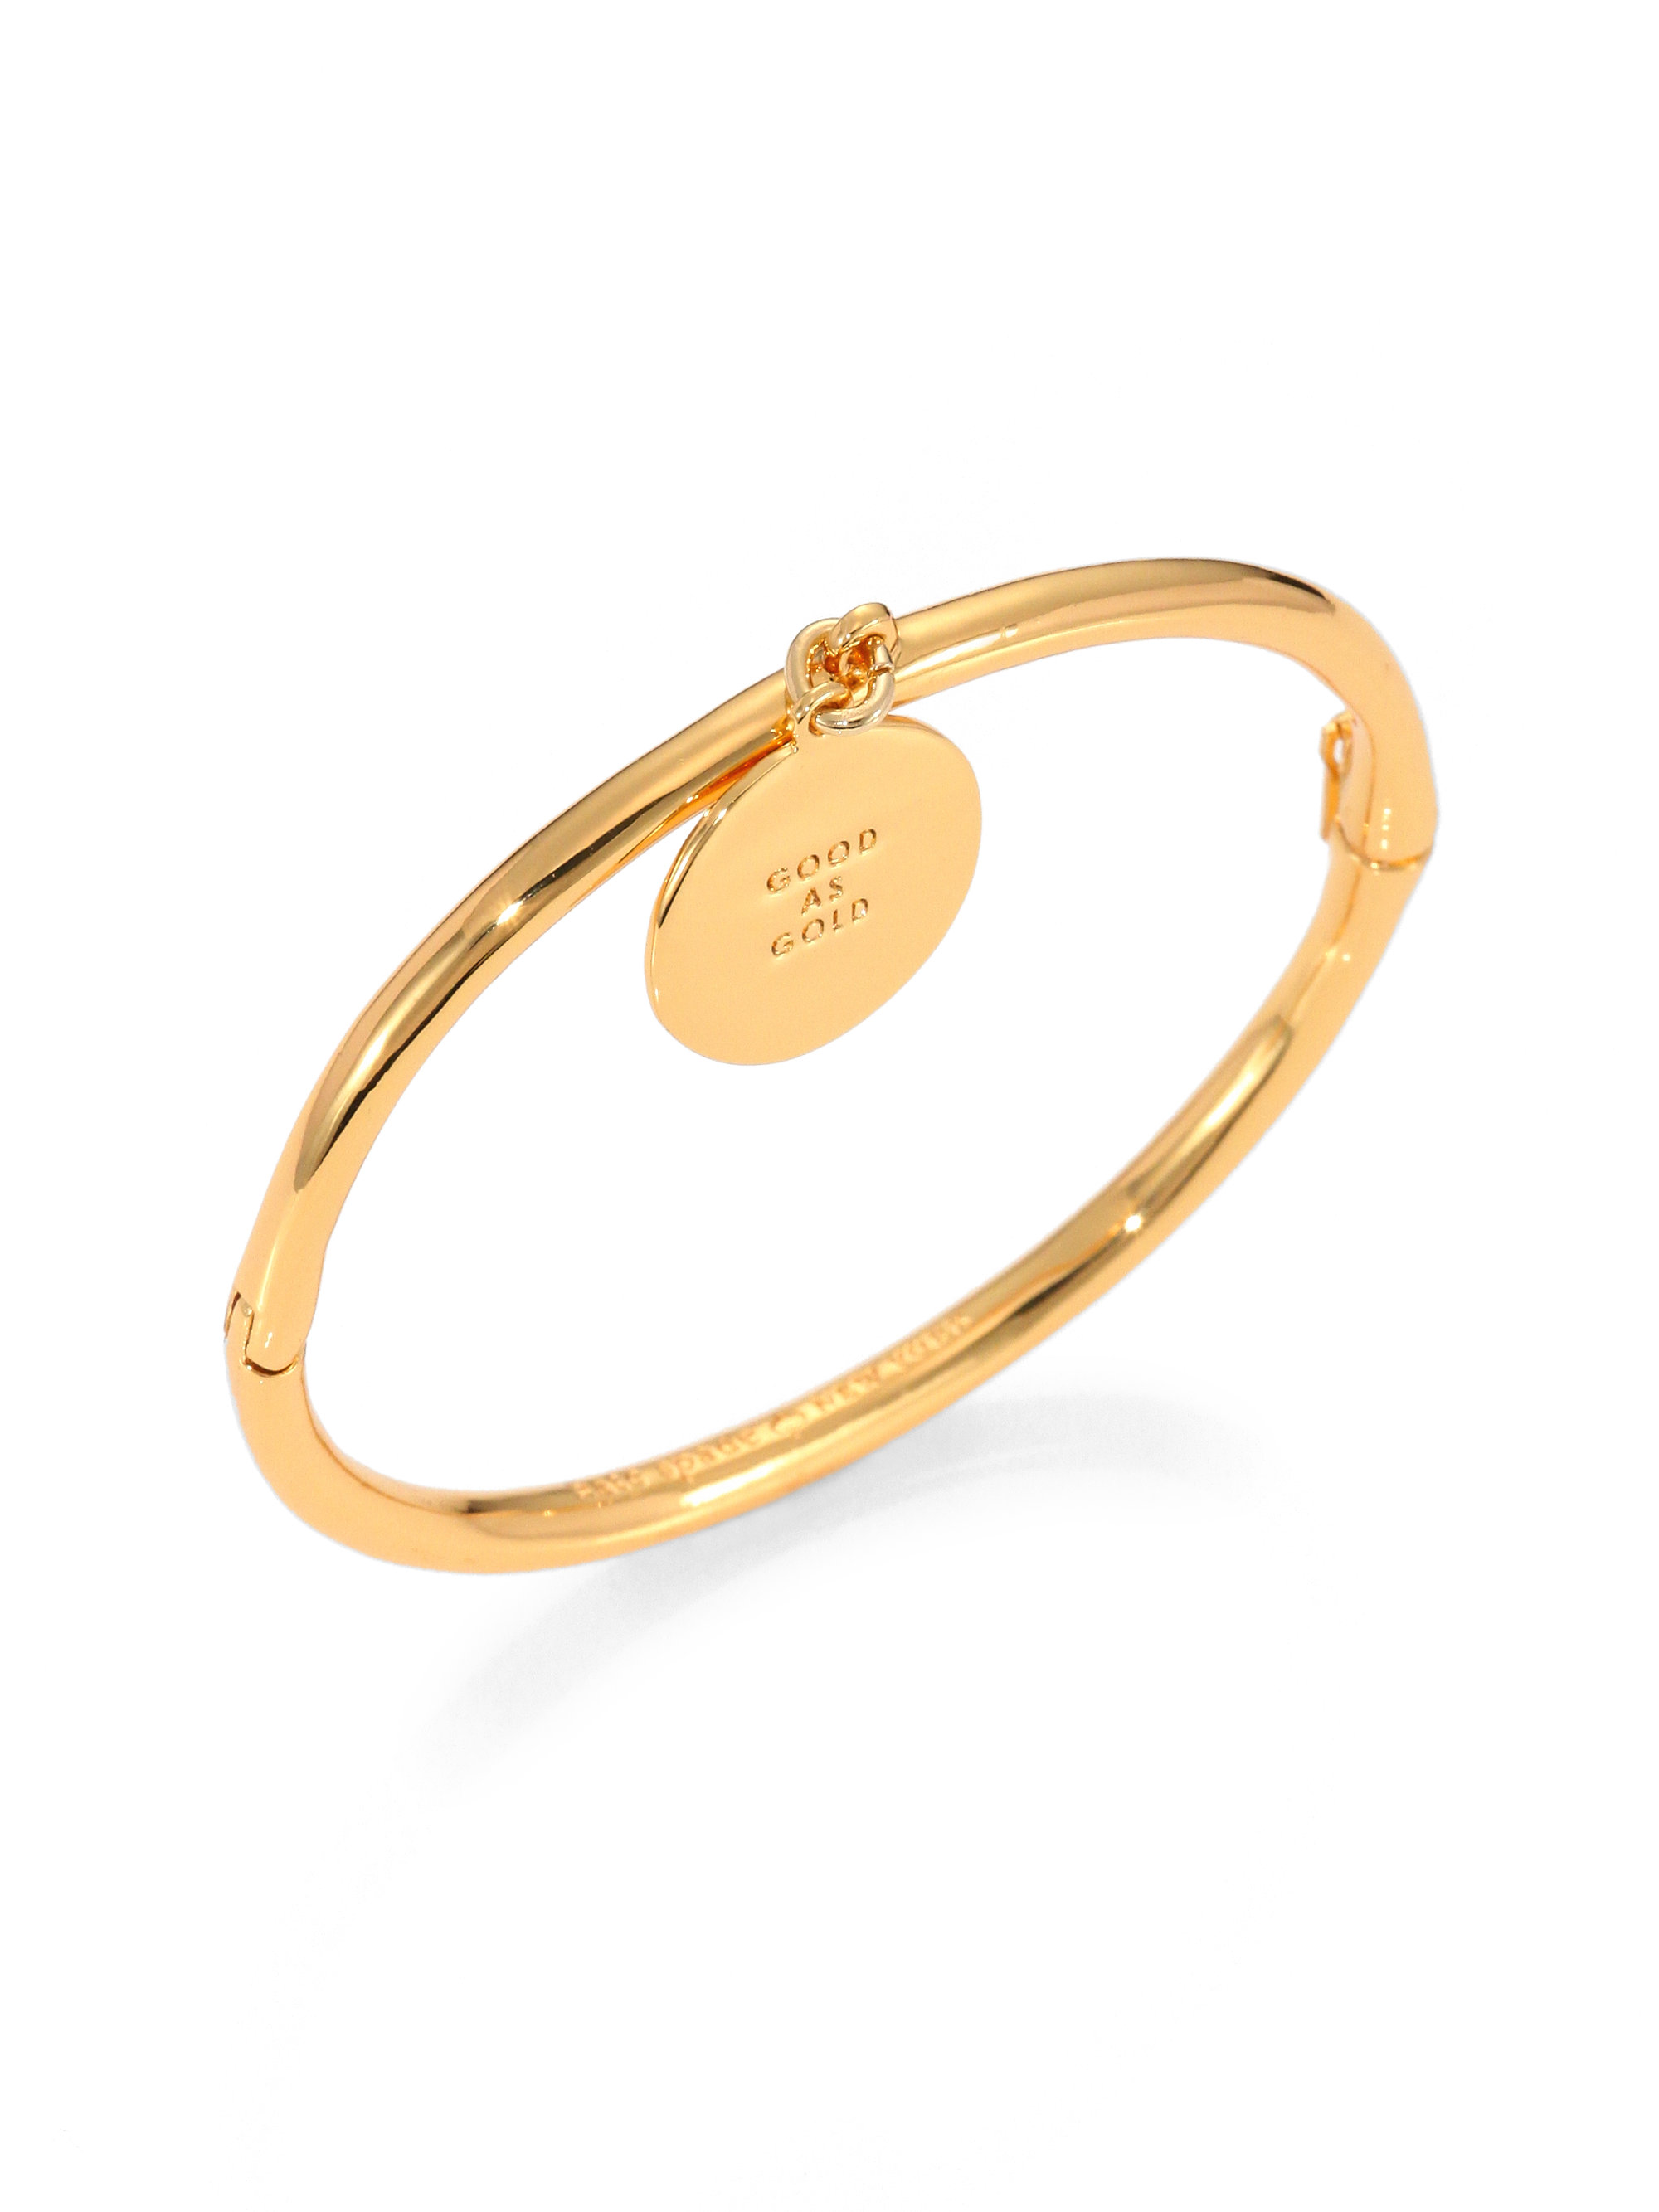 Gallery Previously Sold At Saks Fifth Avenue Women S Gold Bangles Kate Spade